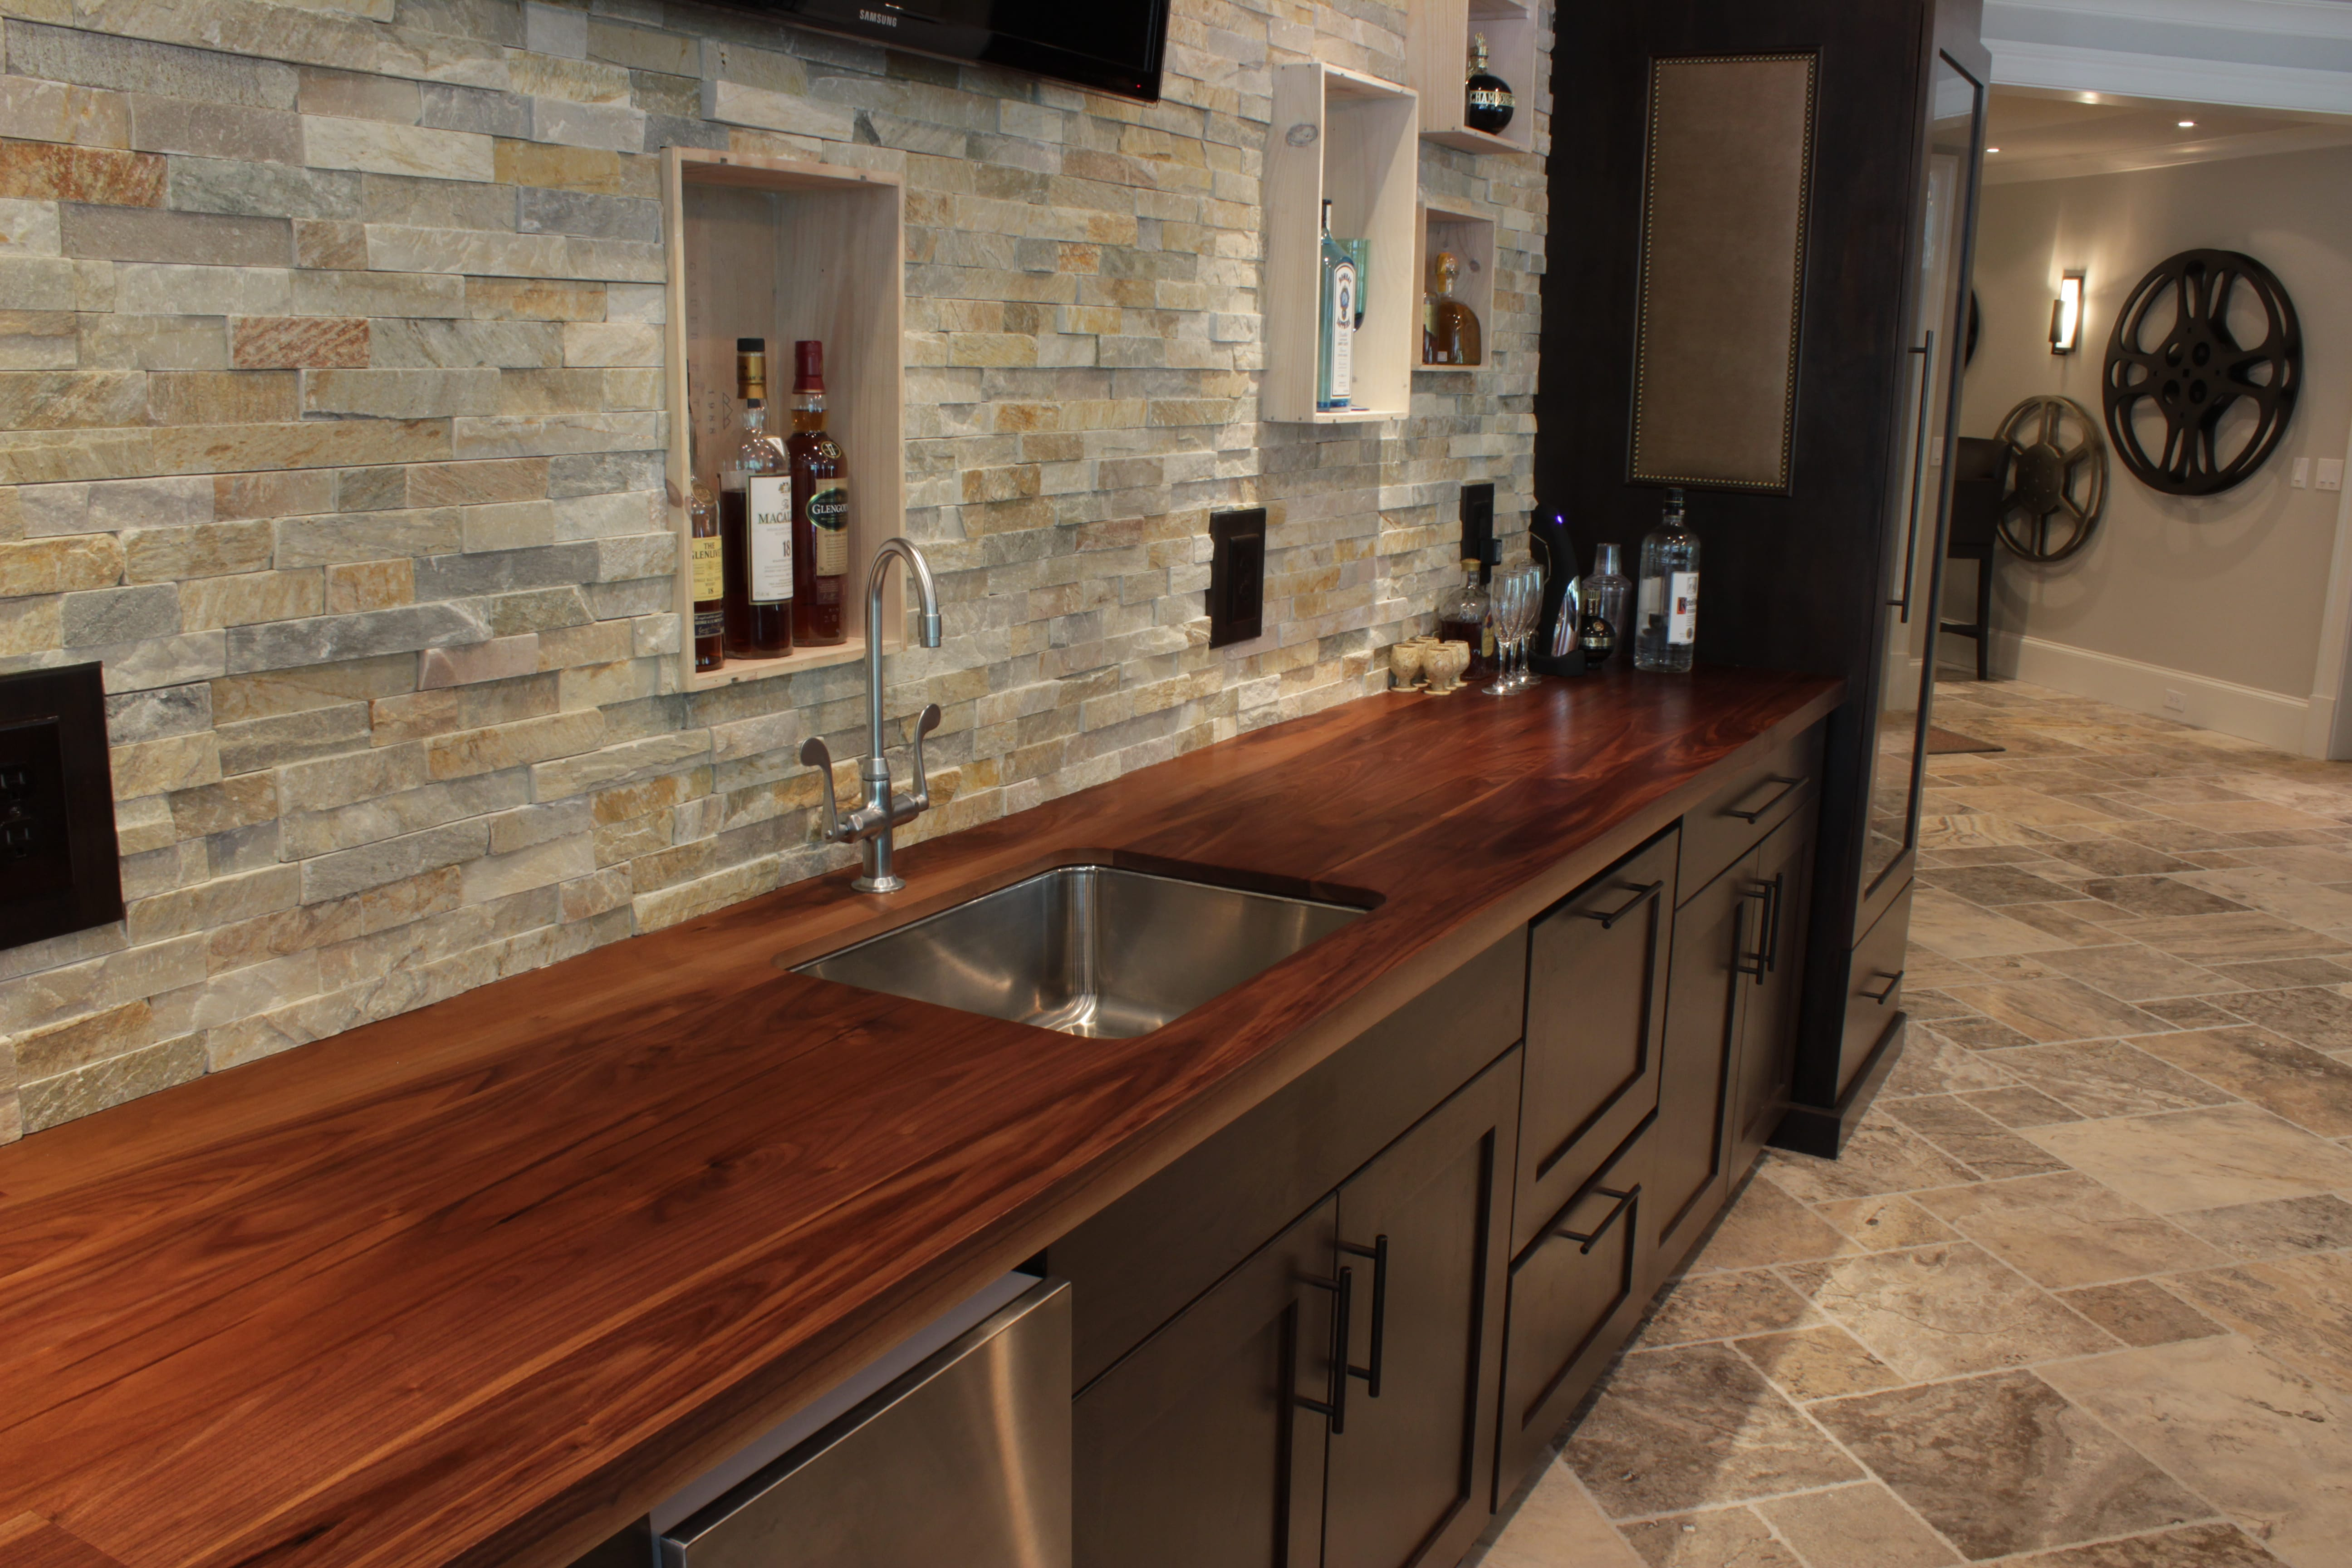 Wood countertop in wet bar